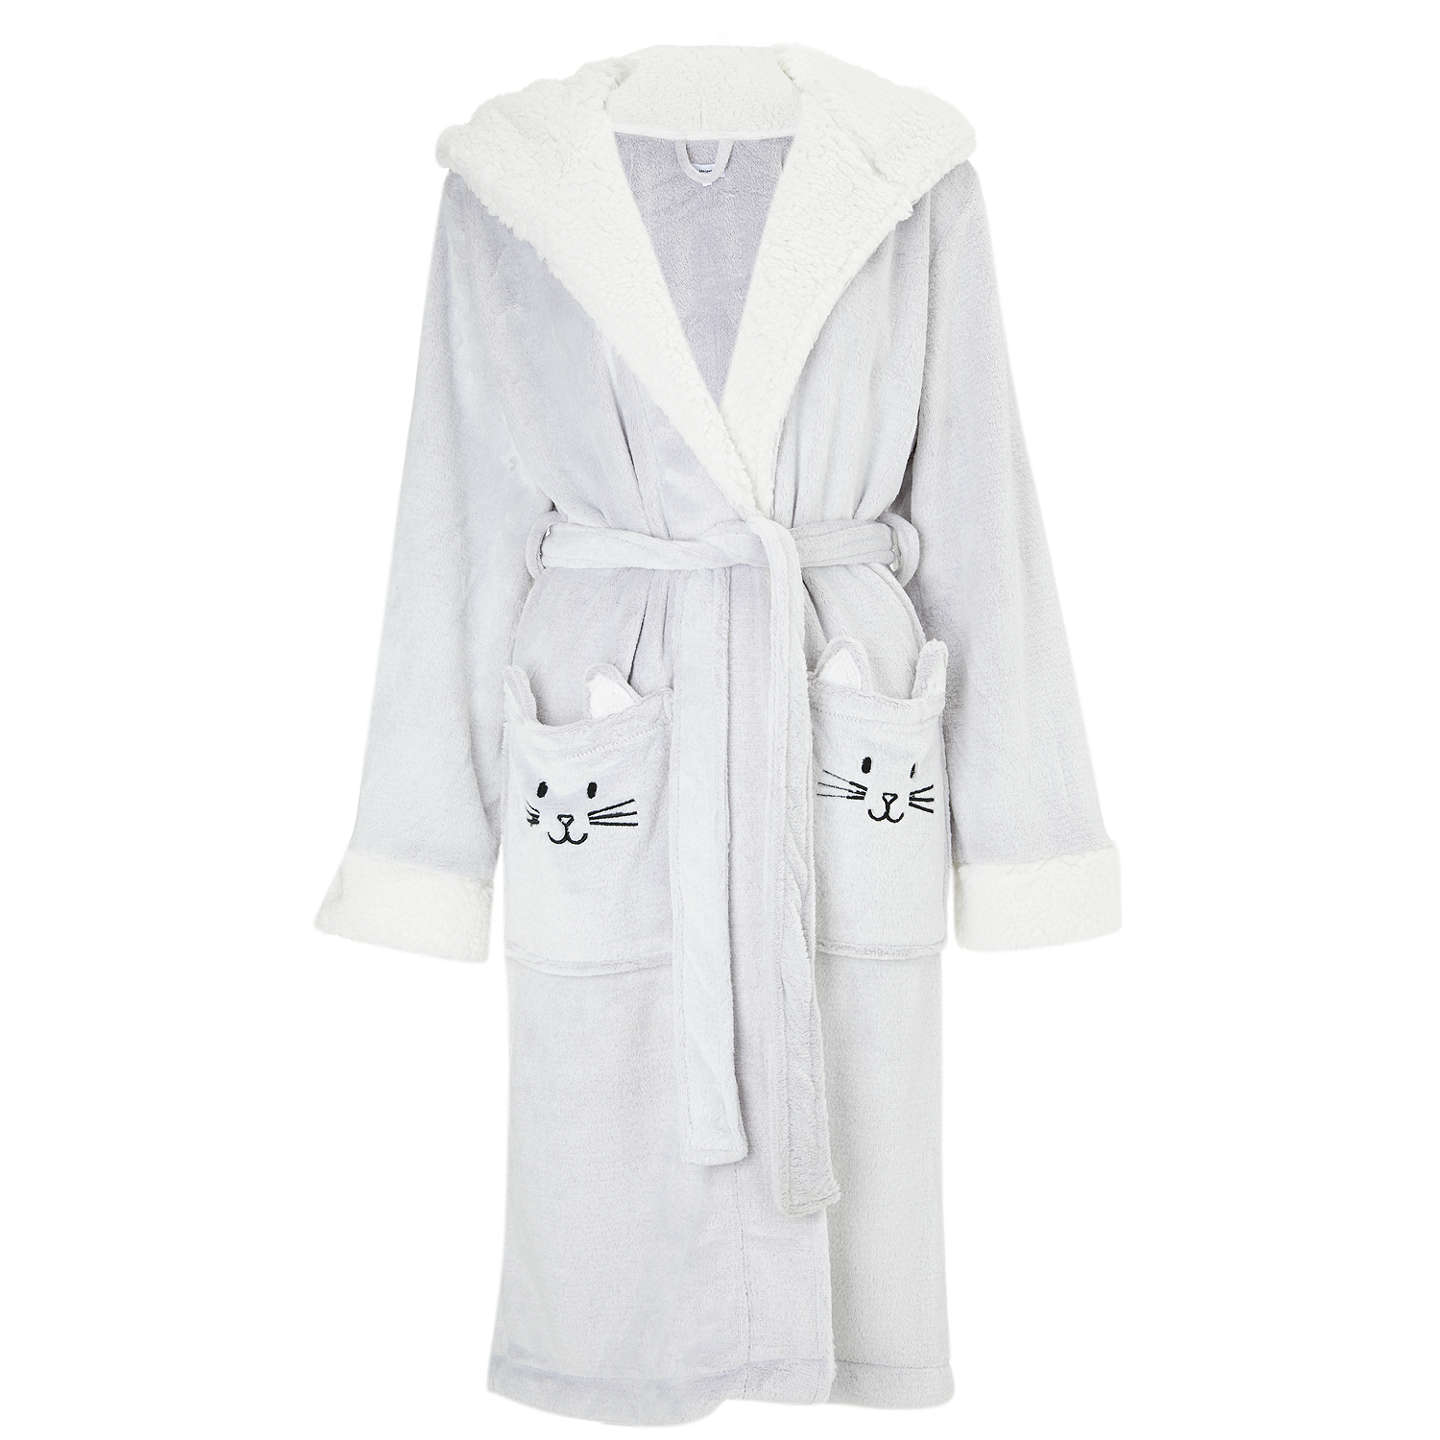 John Lewis Cat Fleece Hooded Dressing Gown, Grey at John Lewis